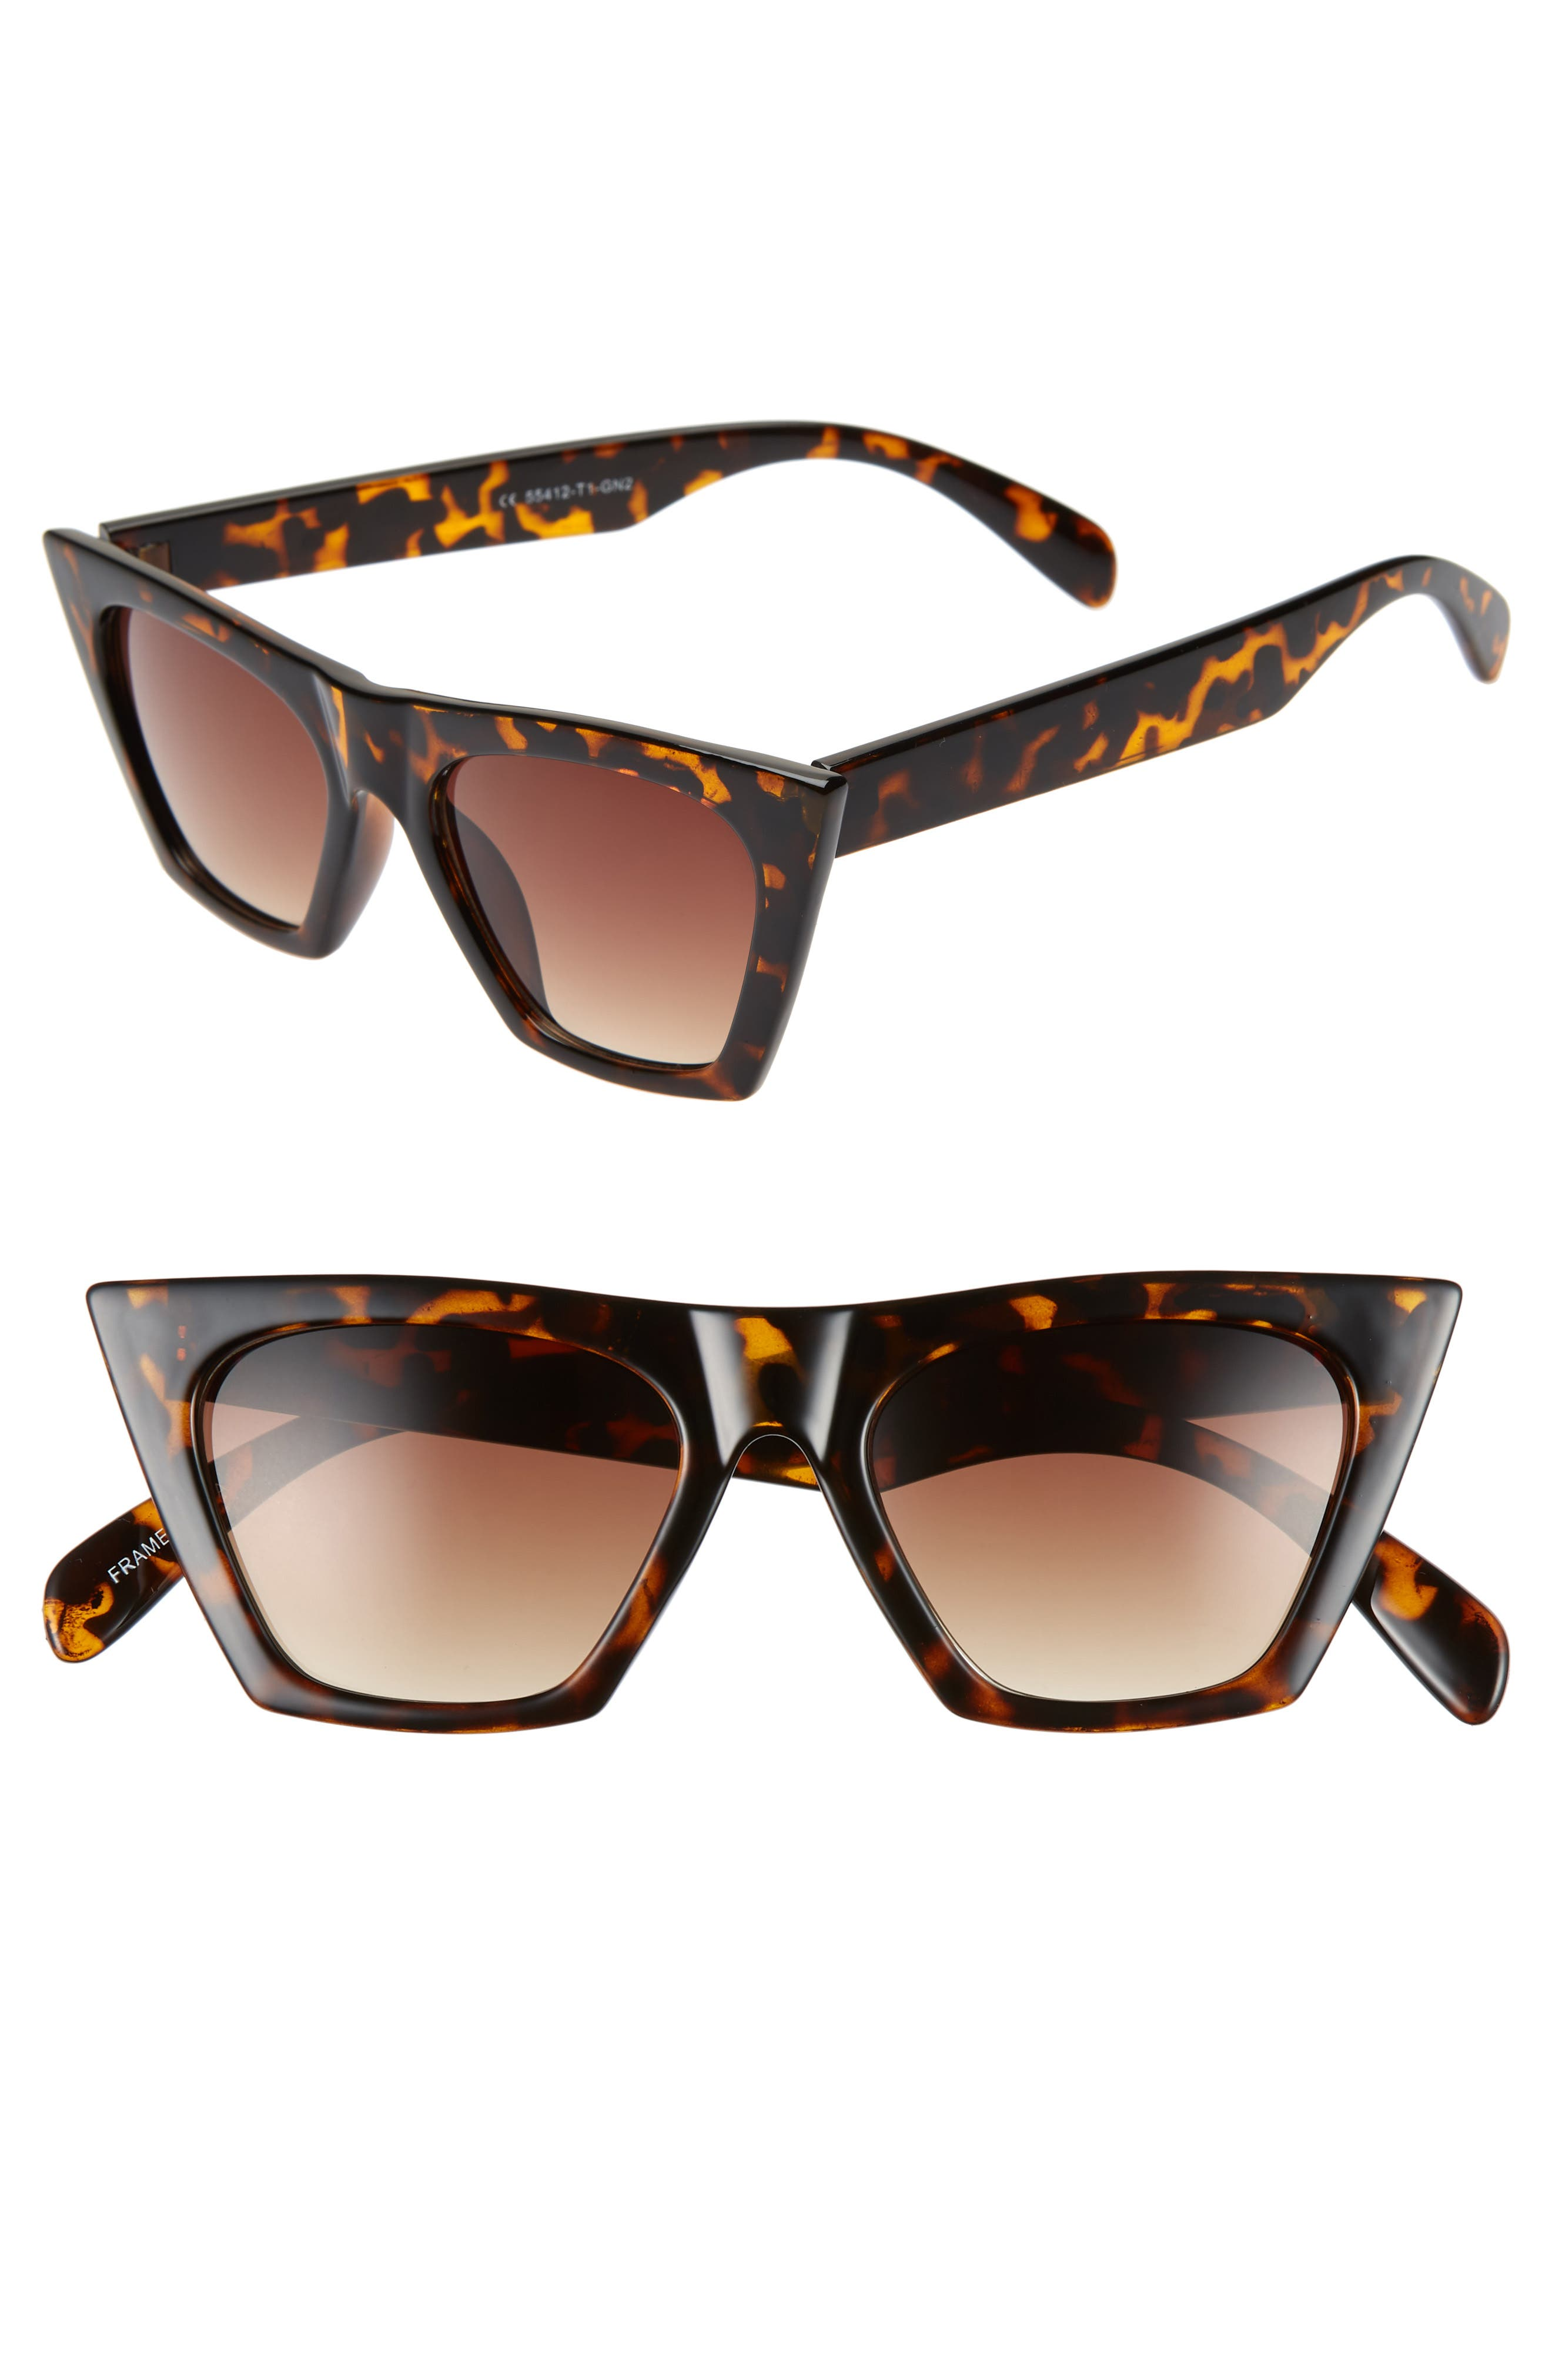 50mm Square Cat Eye Sunglasses,                         Main,                         color, 200